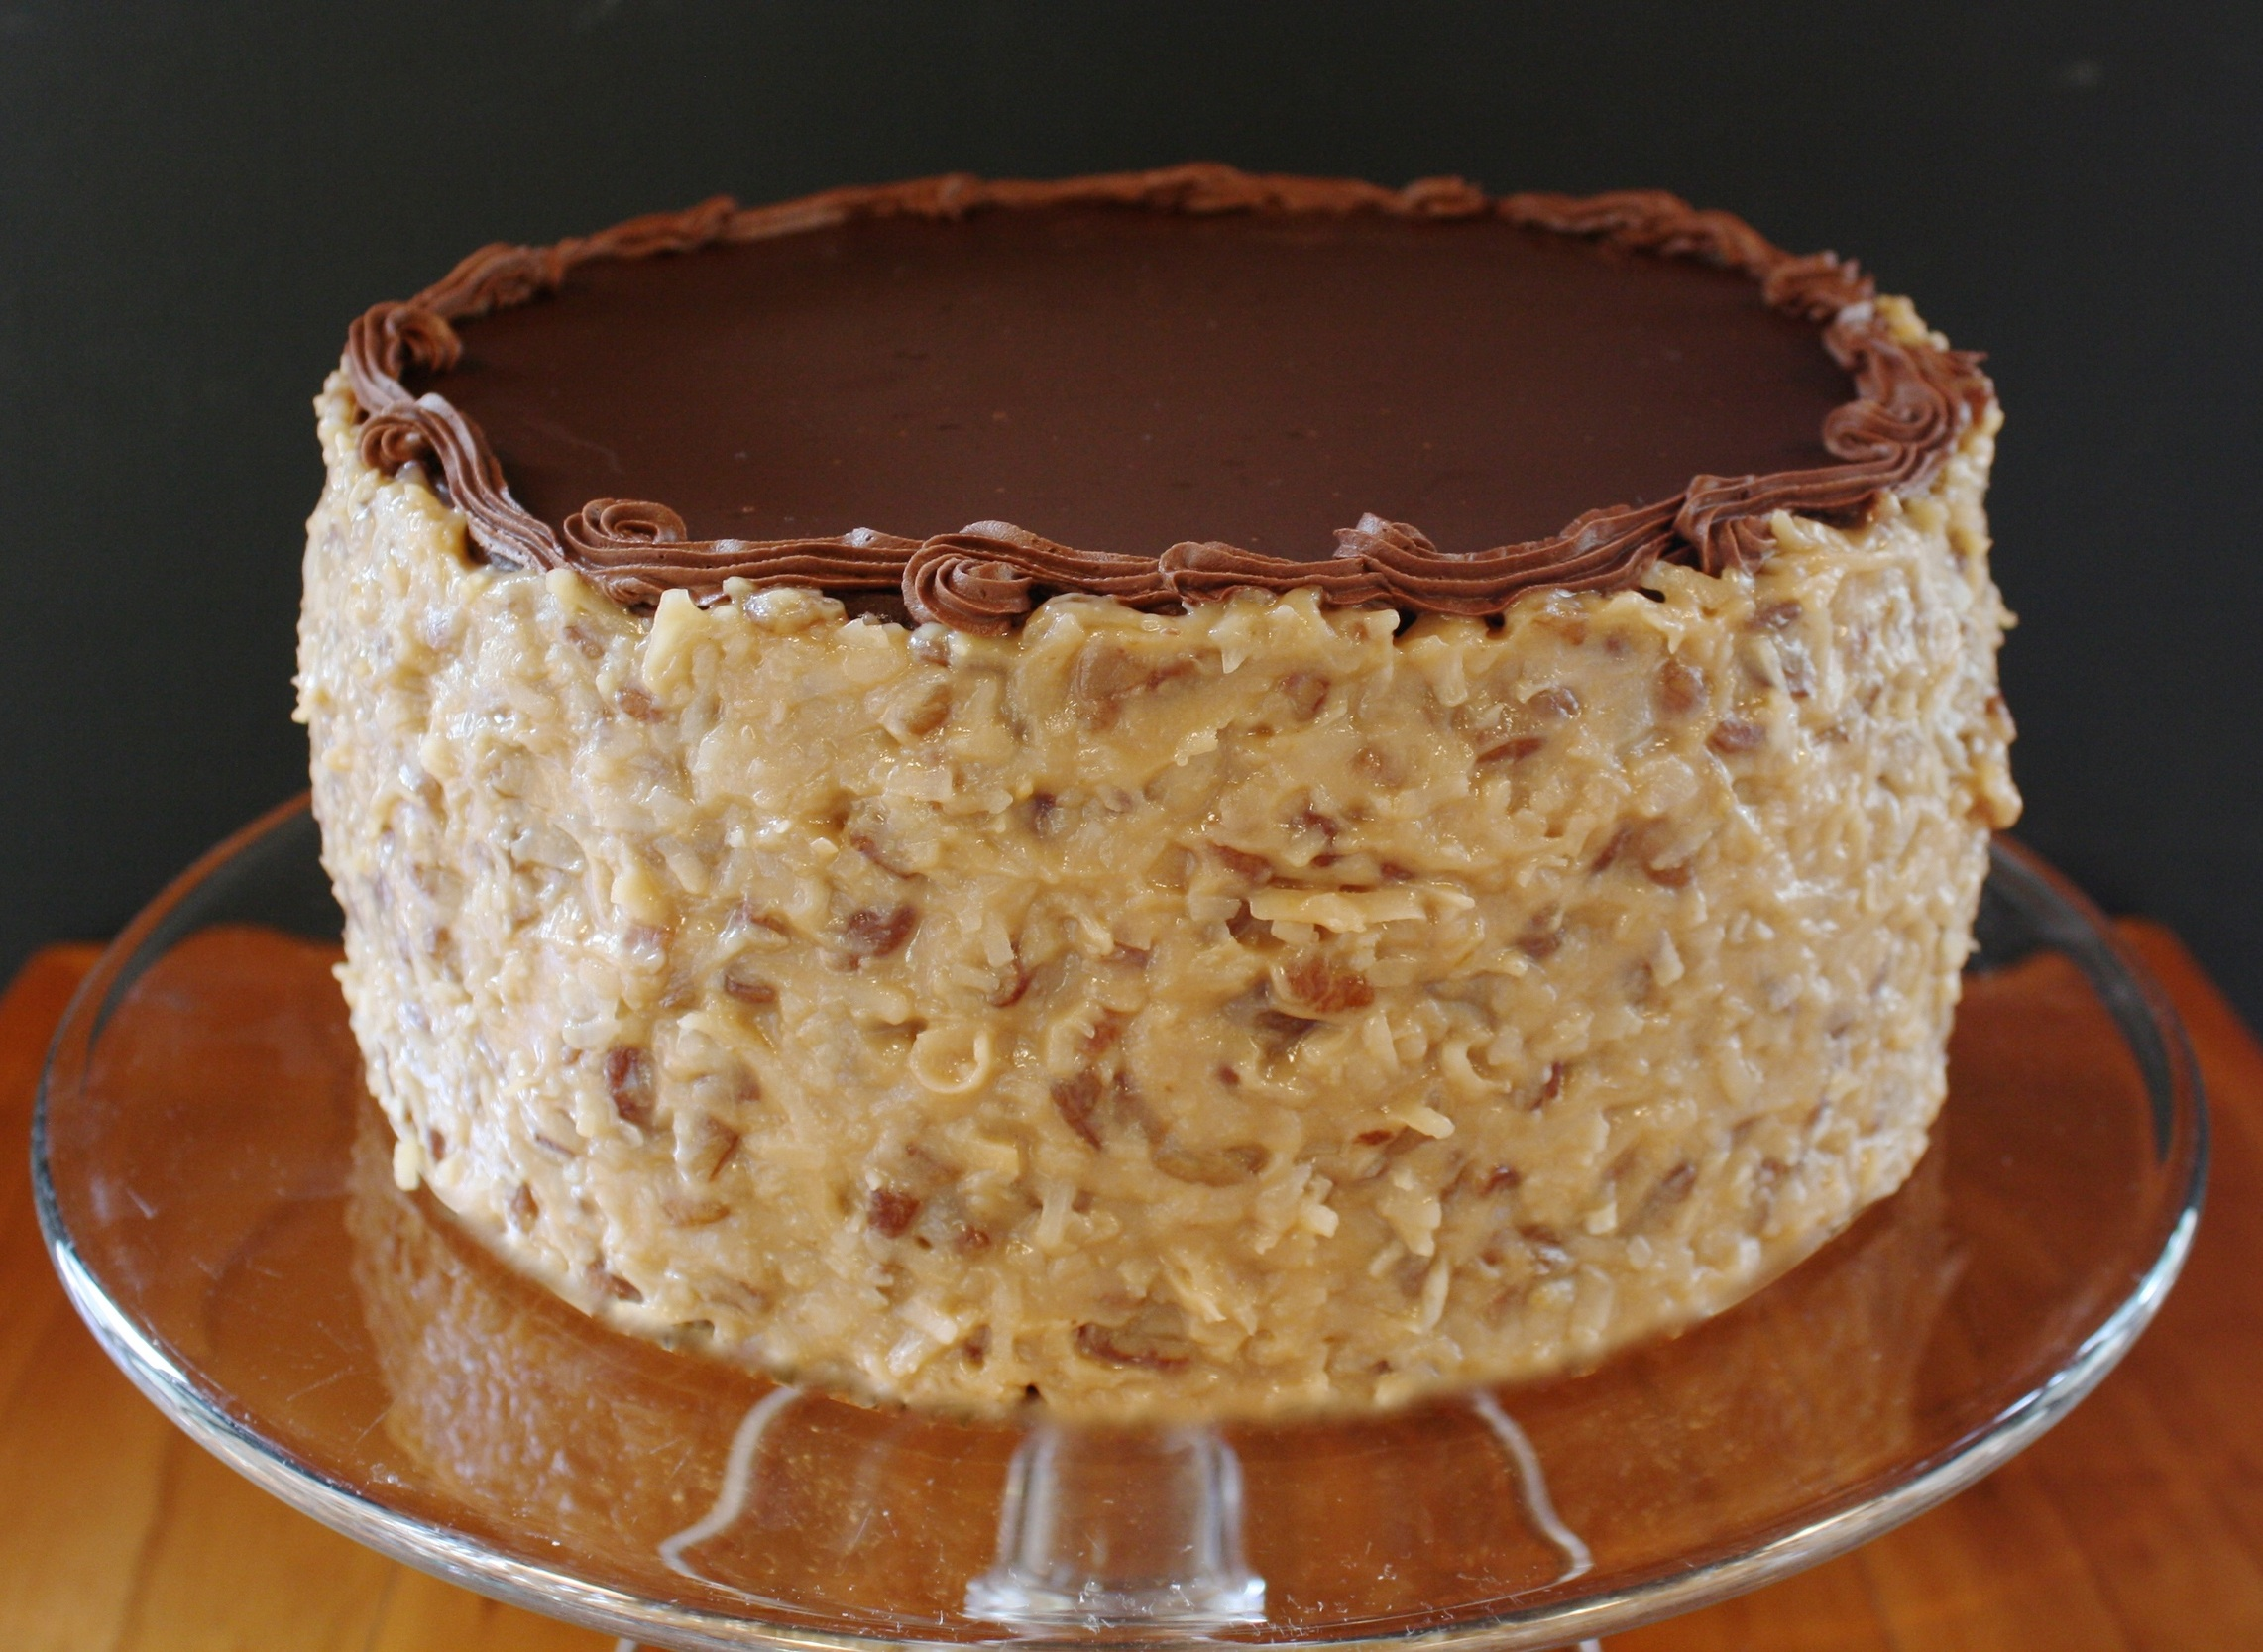 German chocolate*  A delectable CHOCOLATE cake layered with coconut-pecan frosting and decorated with minced pecans